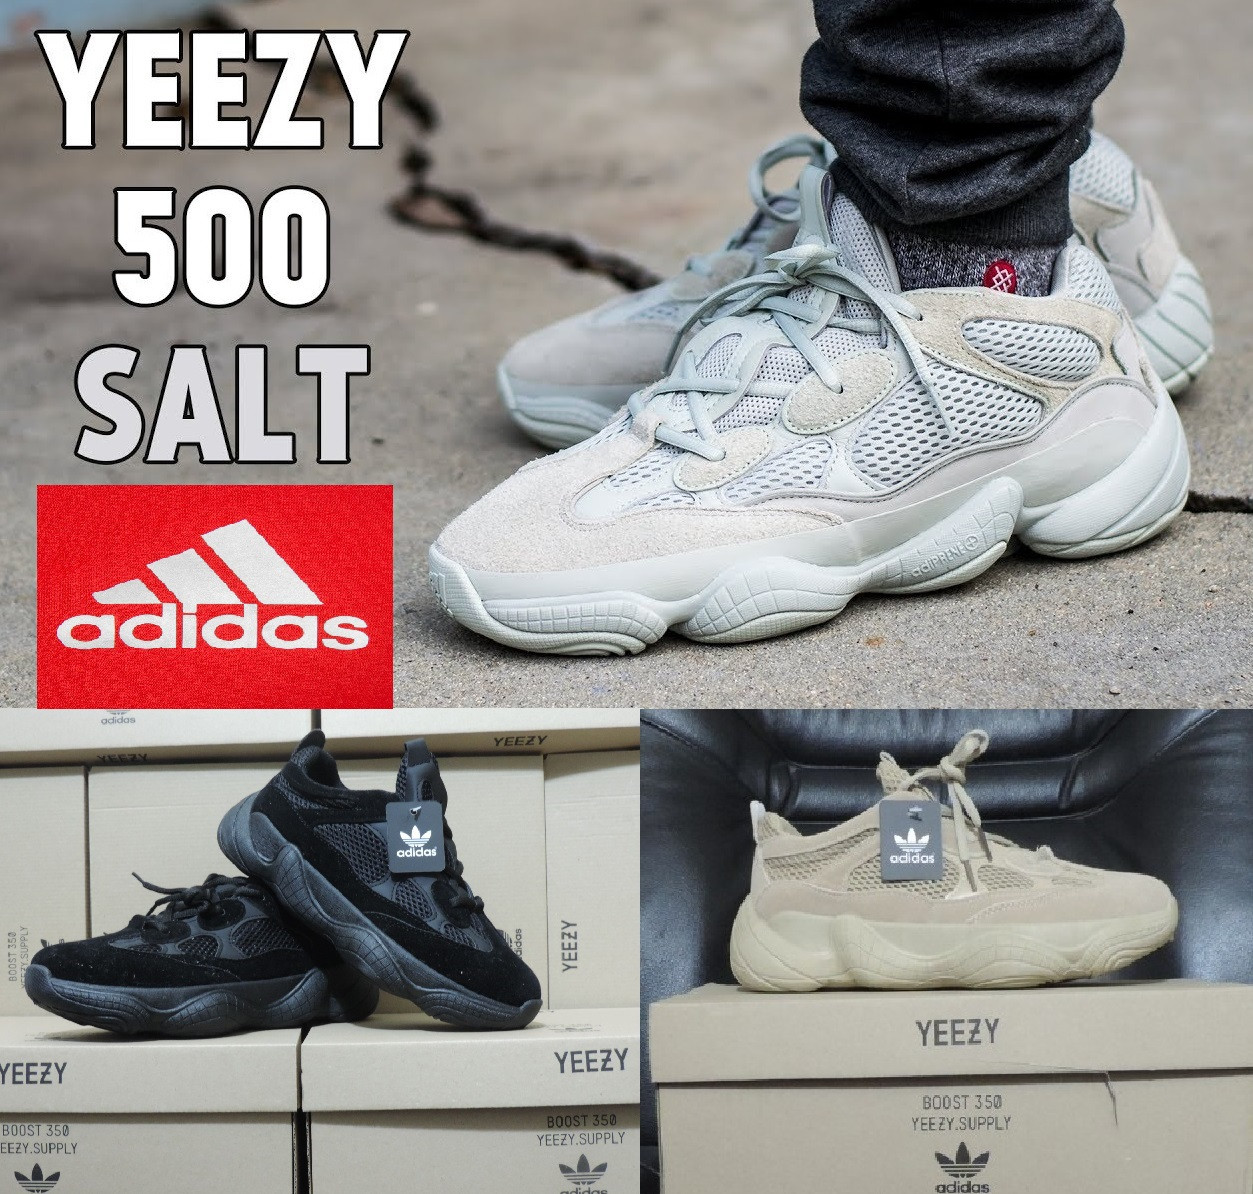 reputable site 4338f 3db85 Мужские кроссовки Adidas Yeezy Boost 500 Salt. Реплика. Производство  Вьетнам.